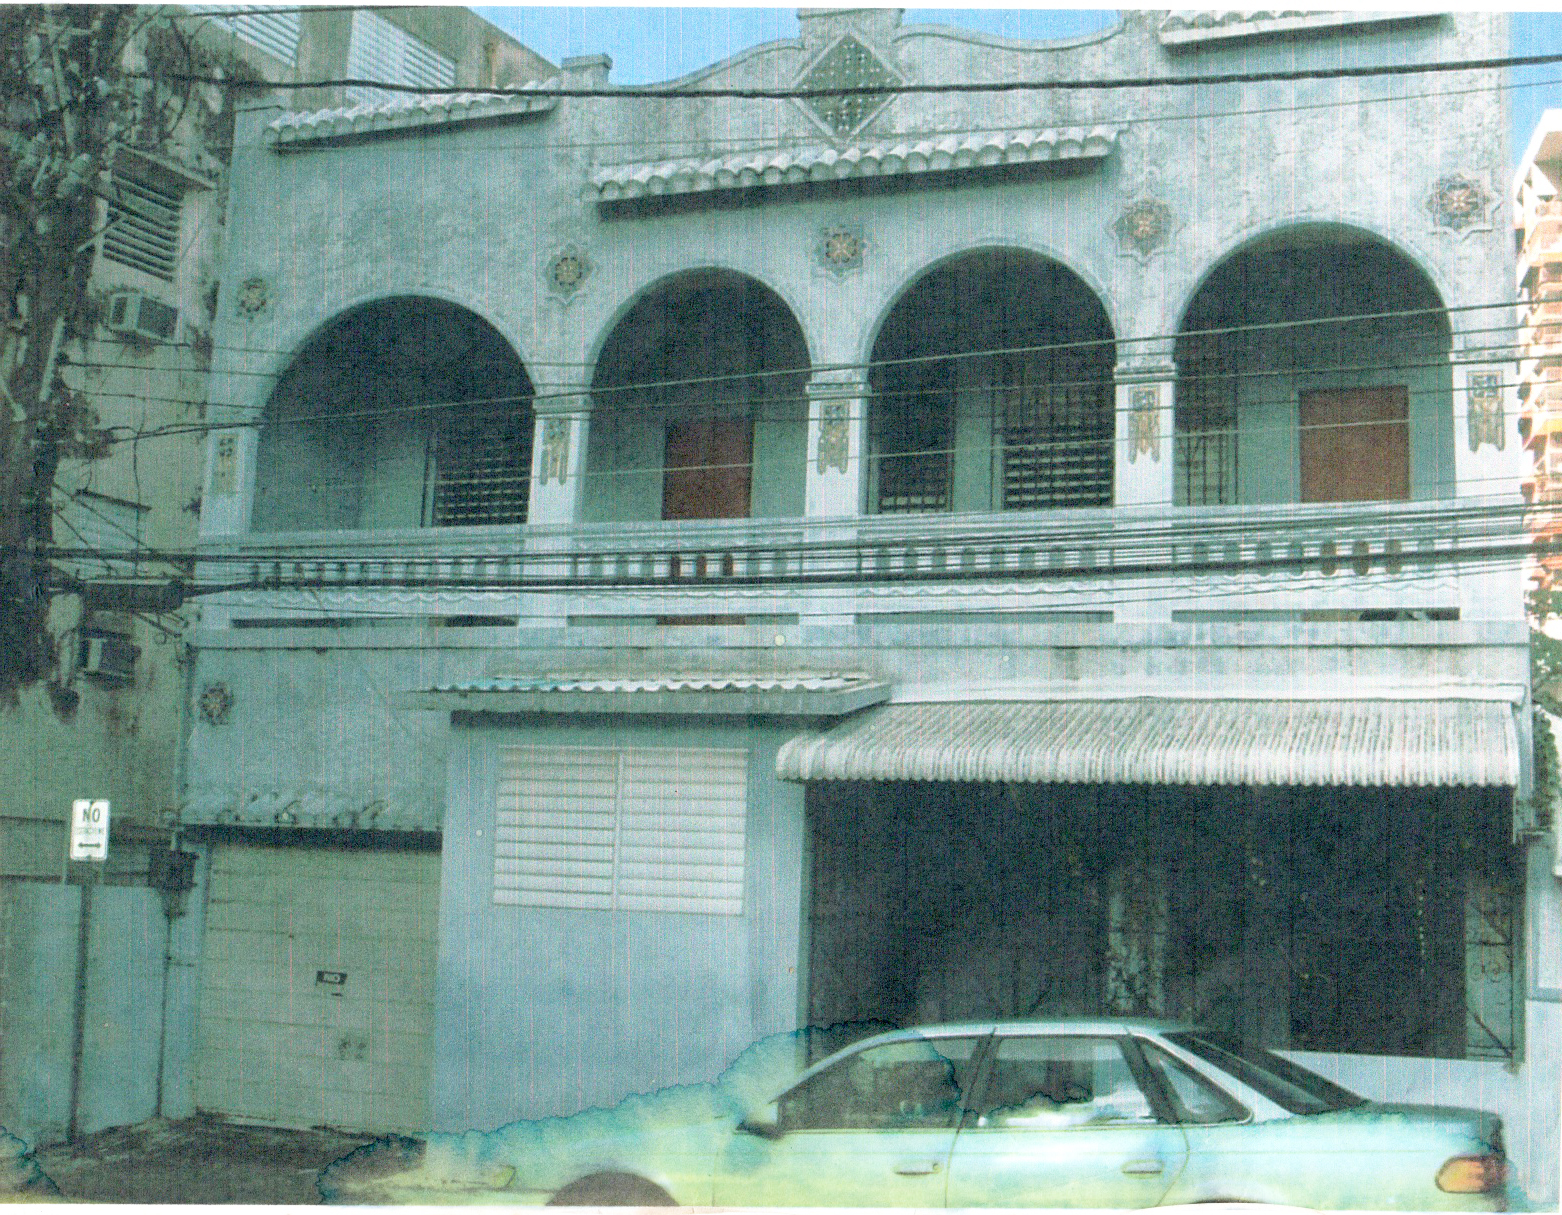 456 Calle Saldaña Before Renovation (circa 2005)